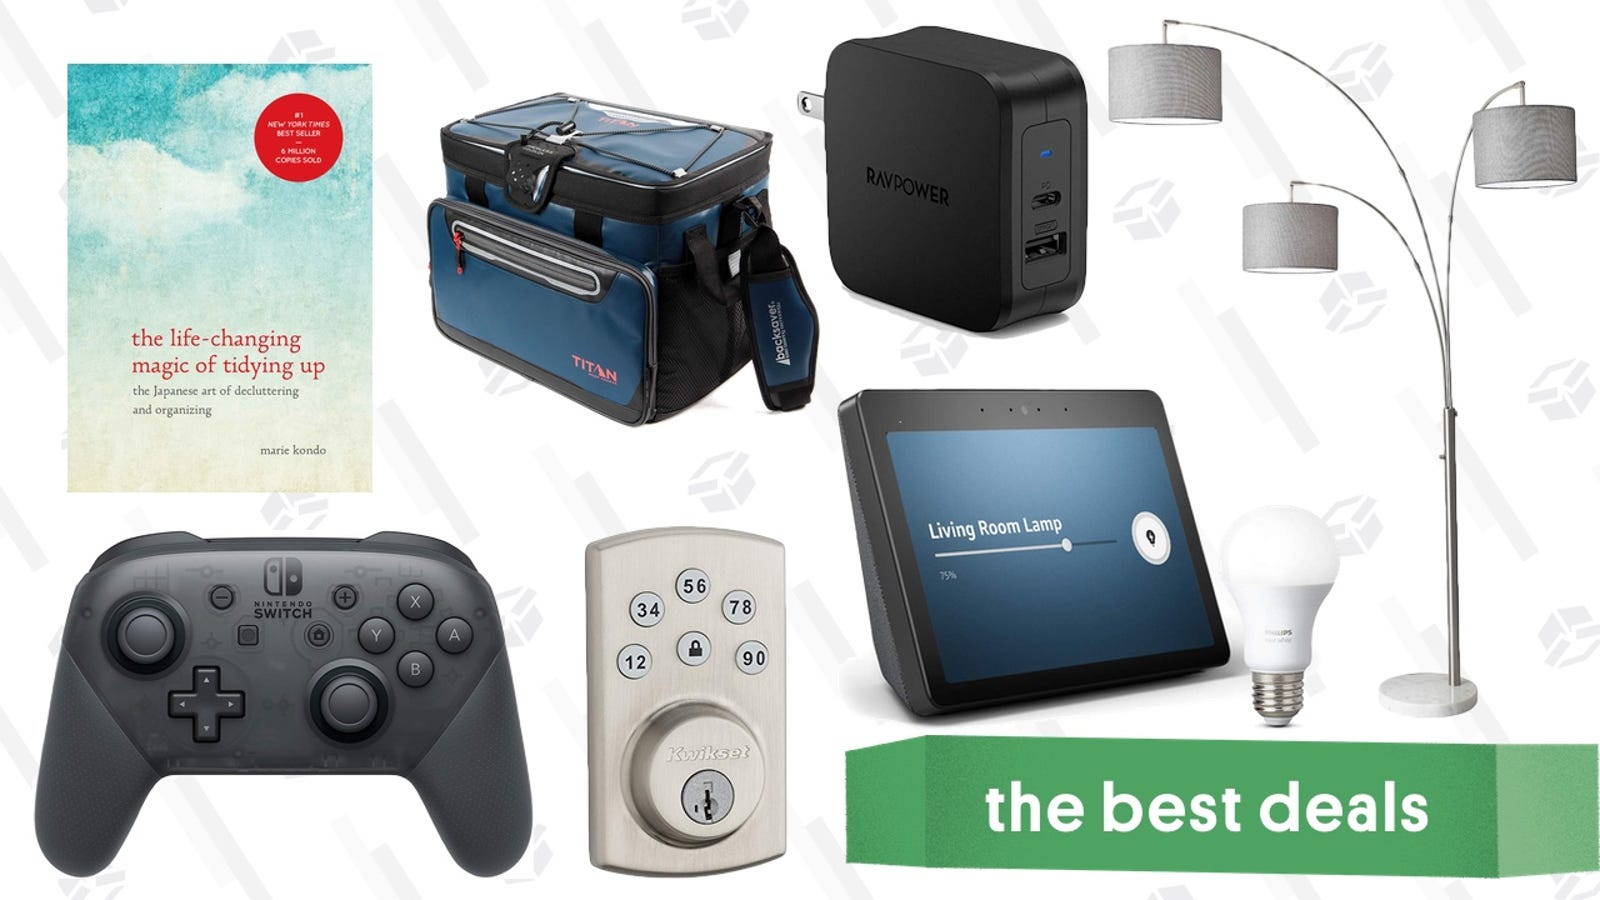 The Best Easter Sunday Deals: Marie Kondo's Book, Fancy Lamps, USB-C Chargers, and More